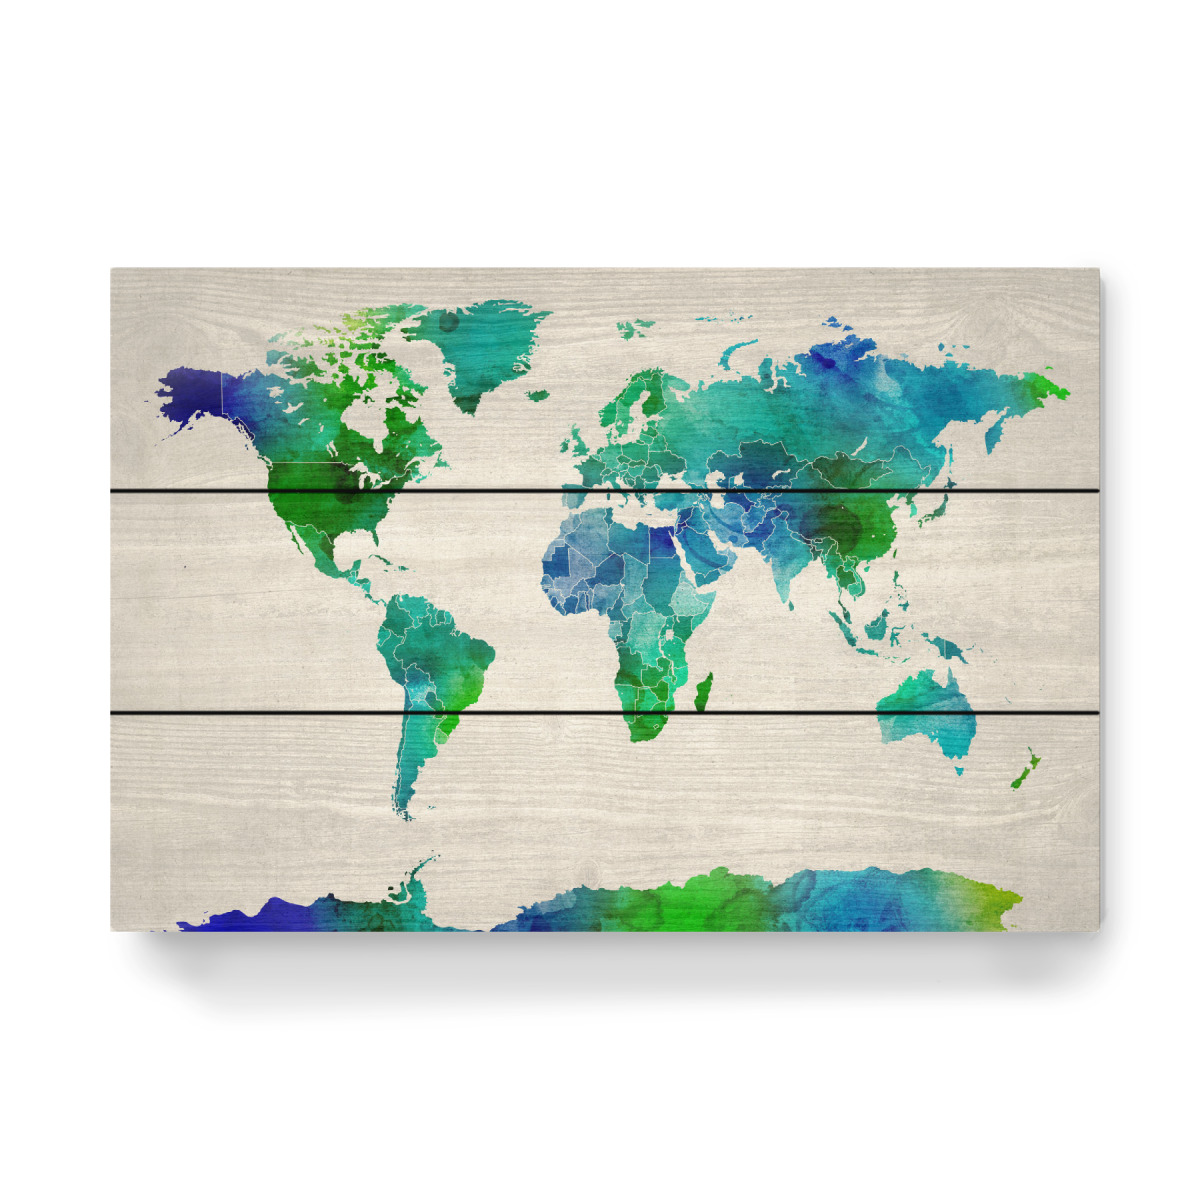 Watercolor Map of the World als Holzbild bei artboxONE kaufen